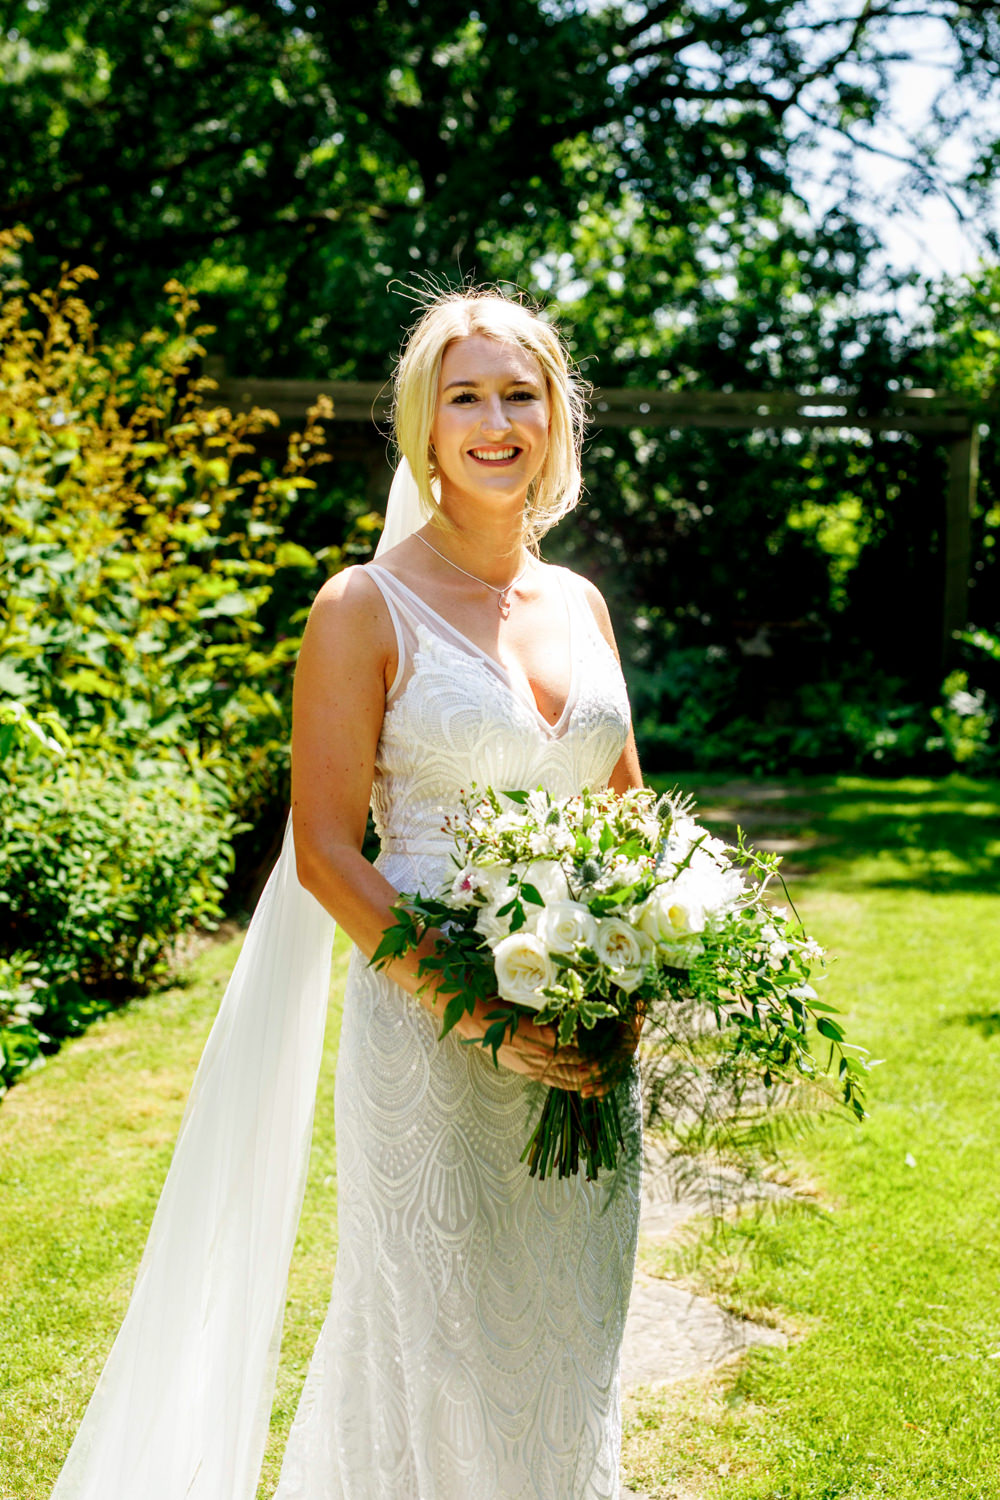 Bride Bridal Dress Gown Made With Love Lace Train Veil Park Farm Wedding Everybody Smile Photography